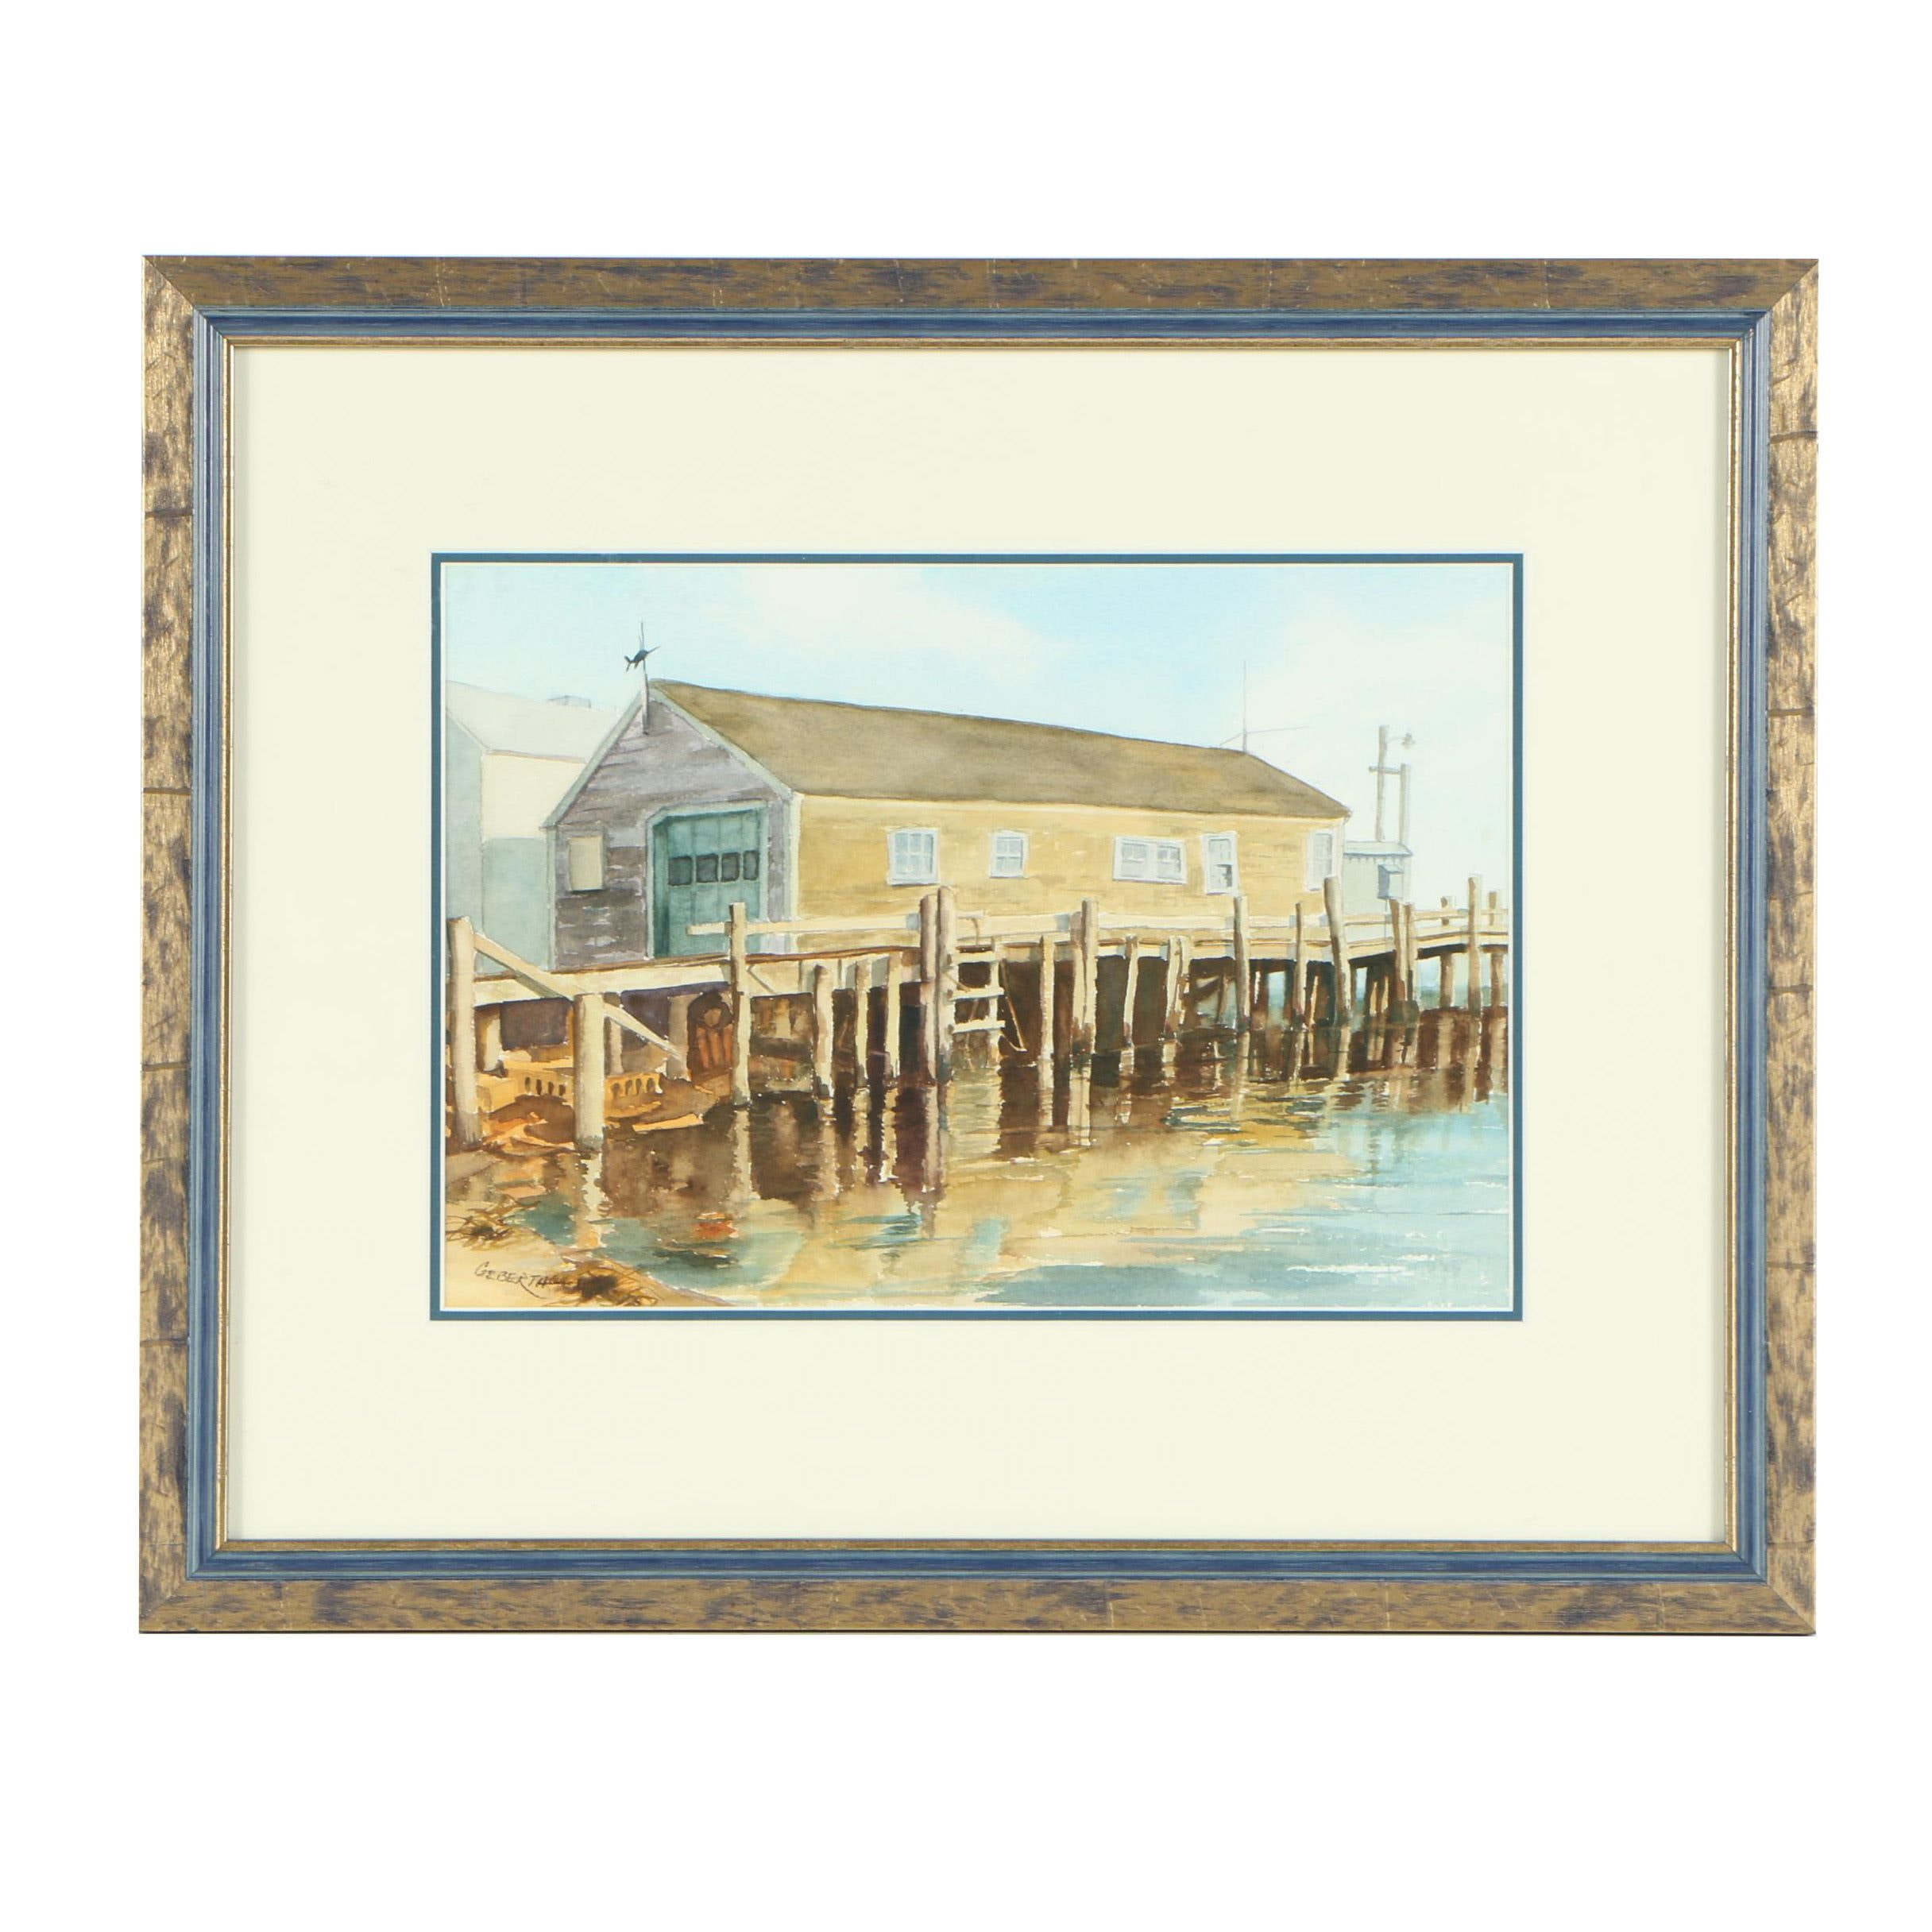 Geberth Watercolor Painting of Building on a Dock